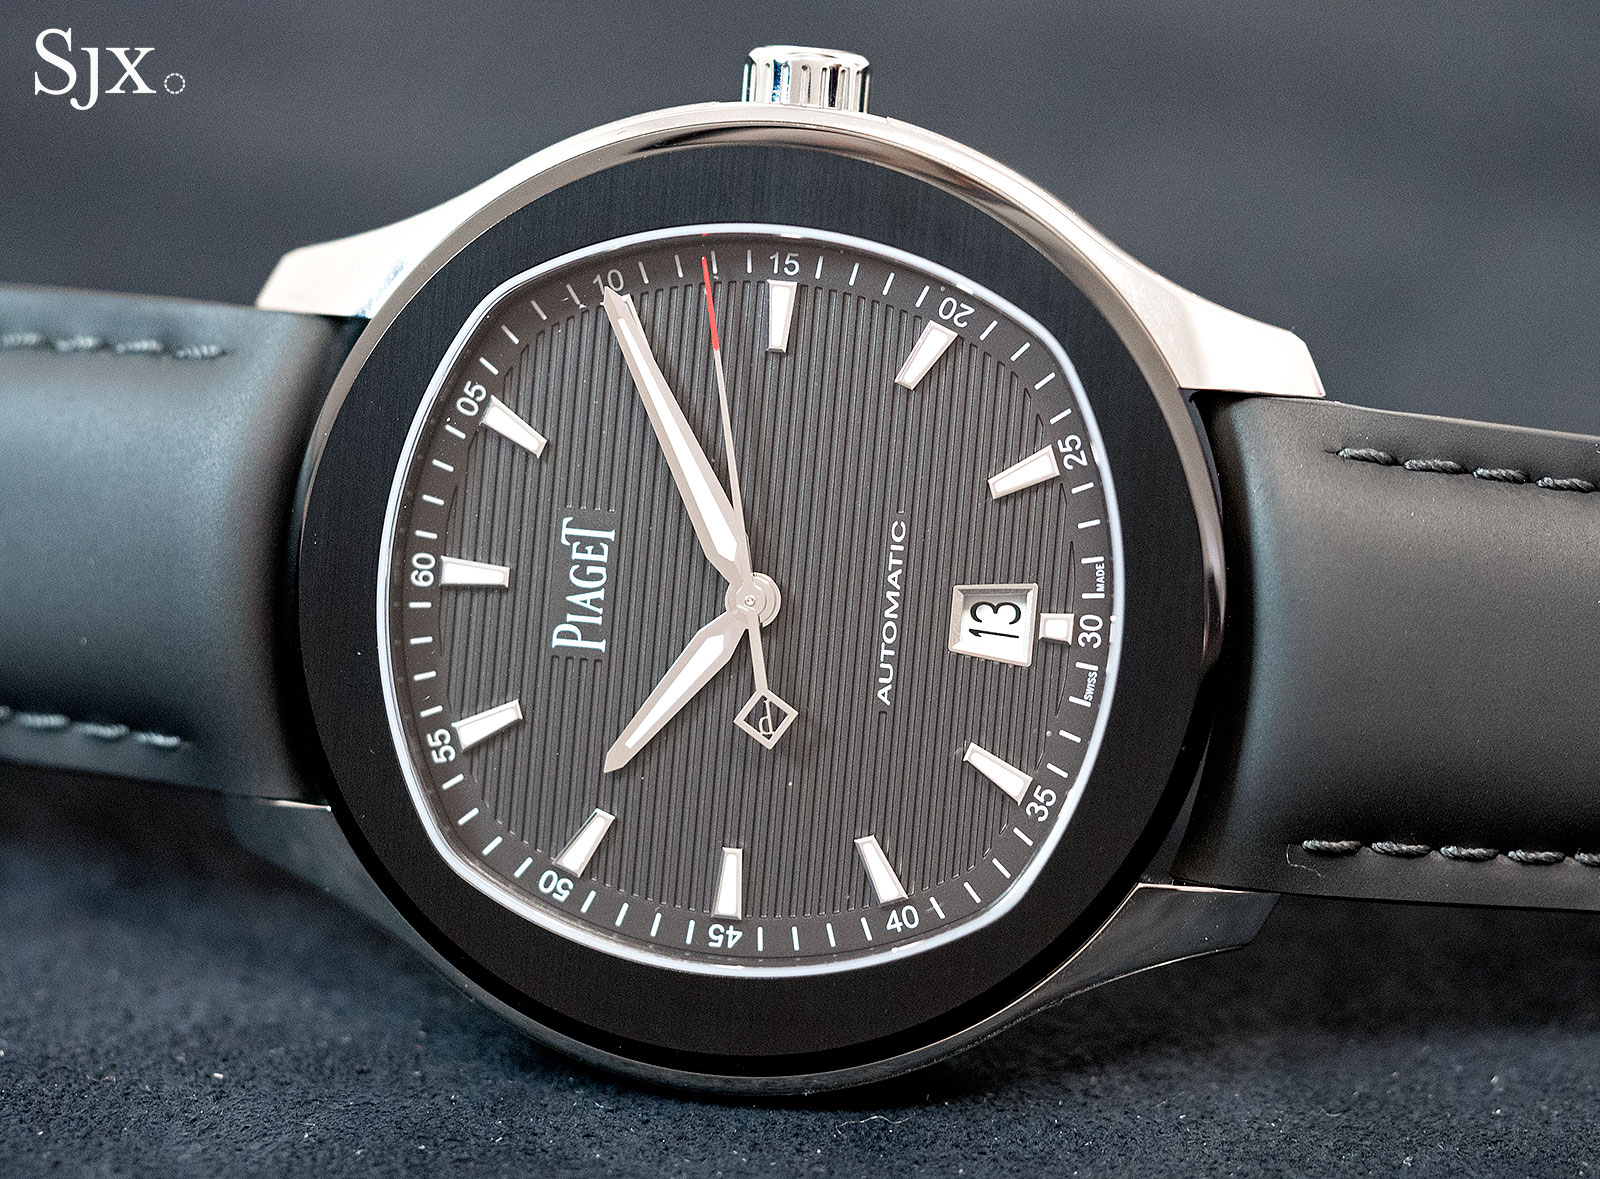 Piaget Polo S Black ADLC-2